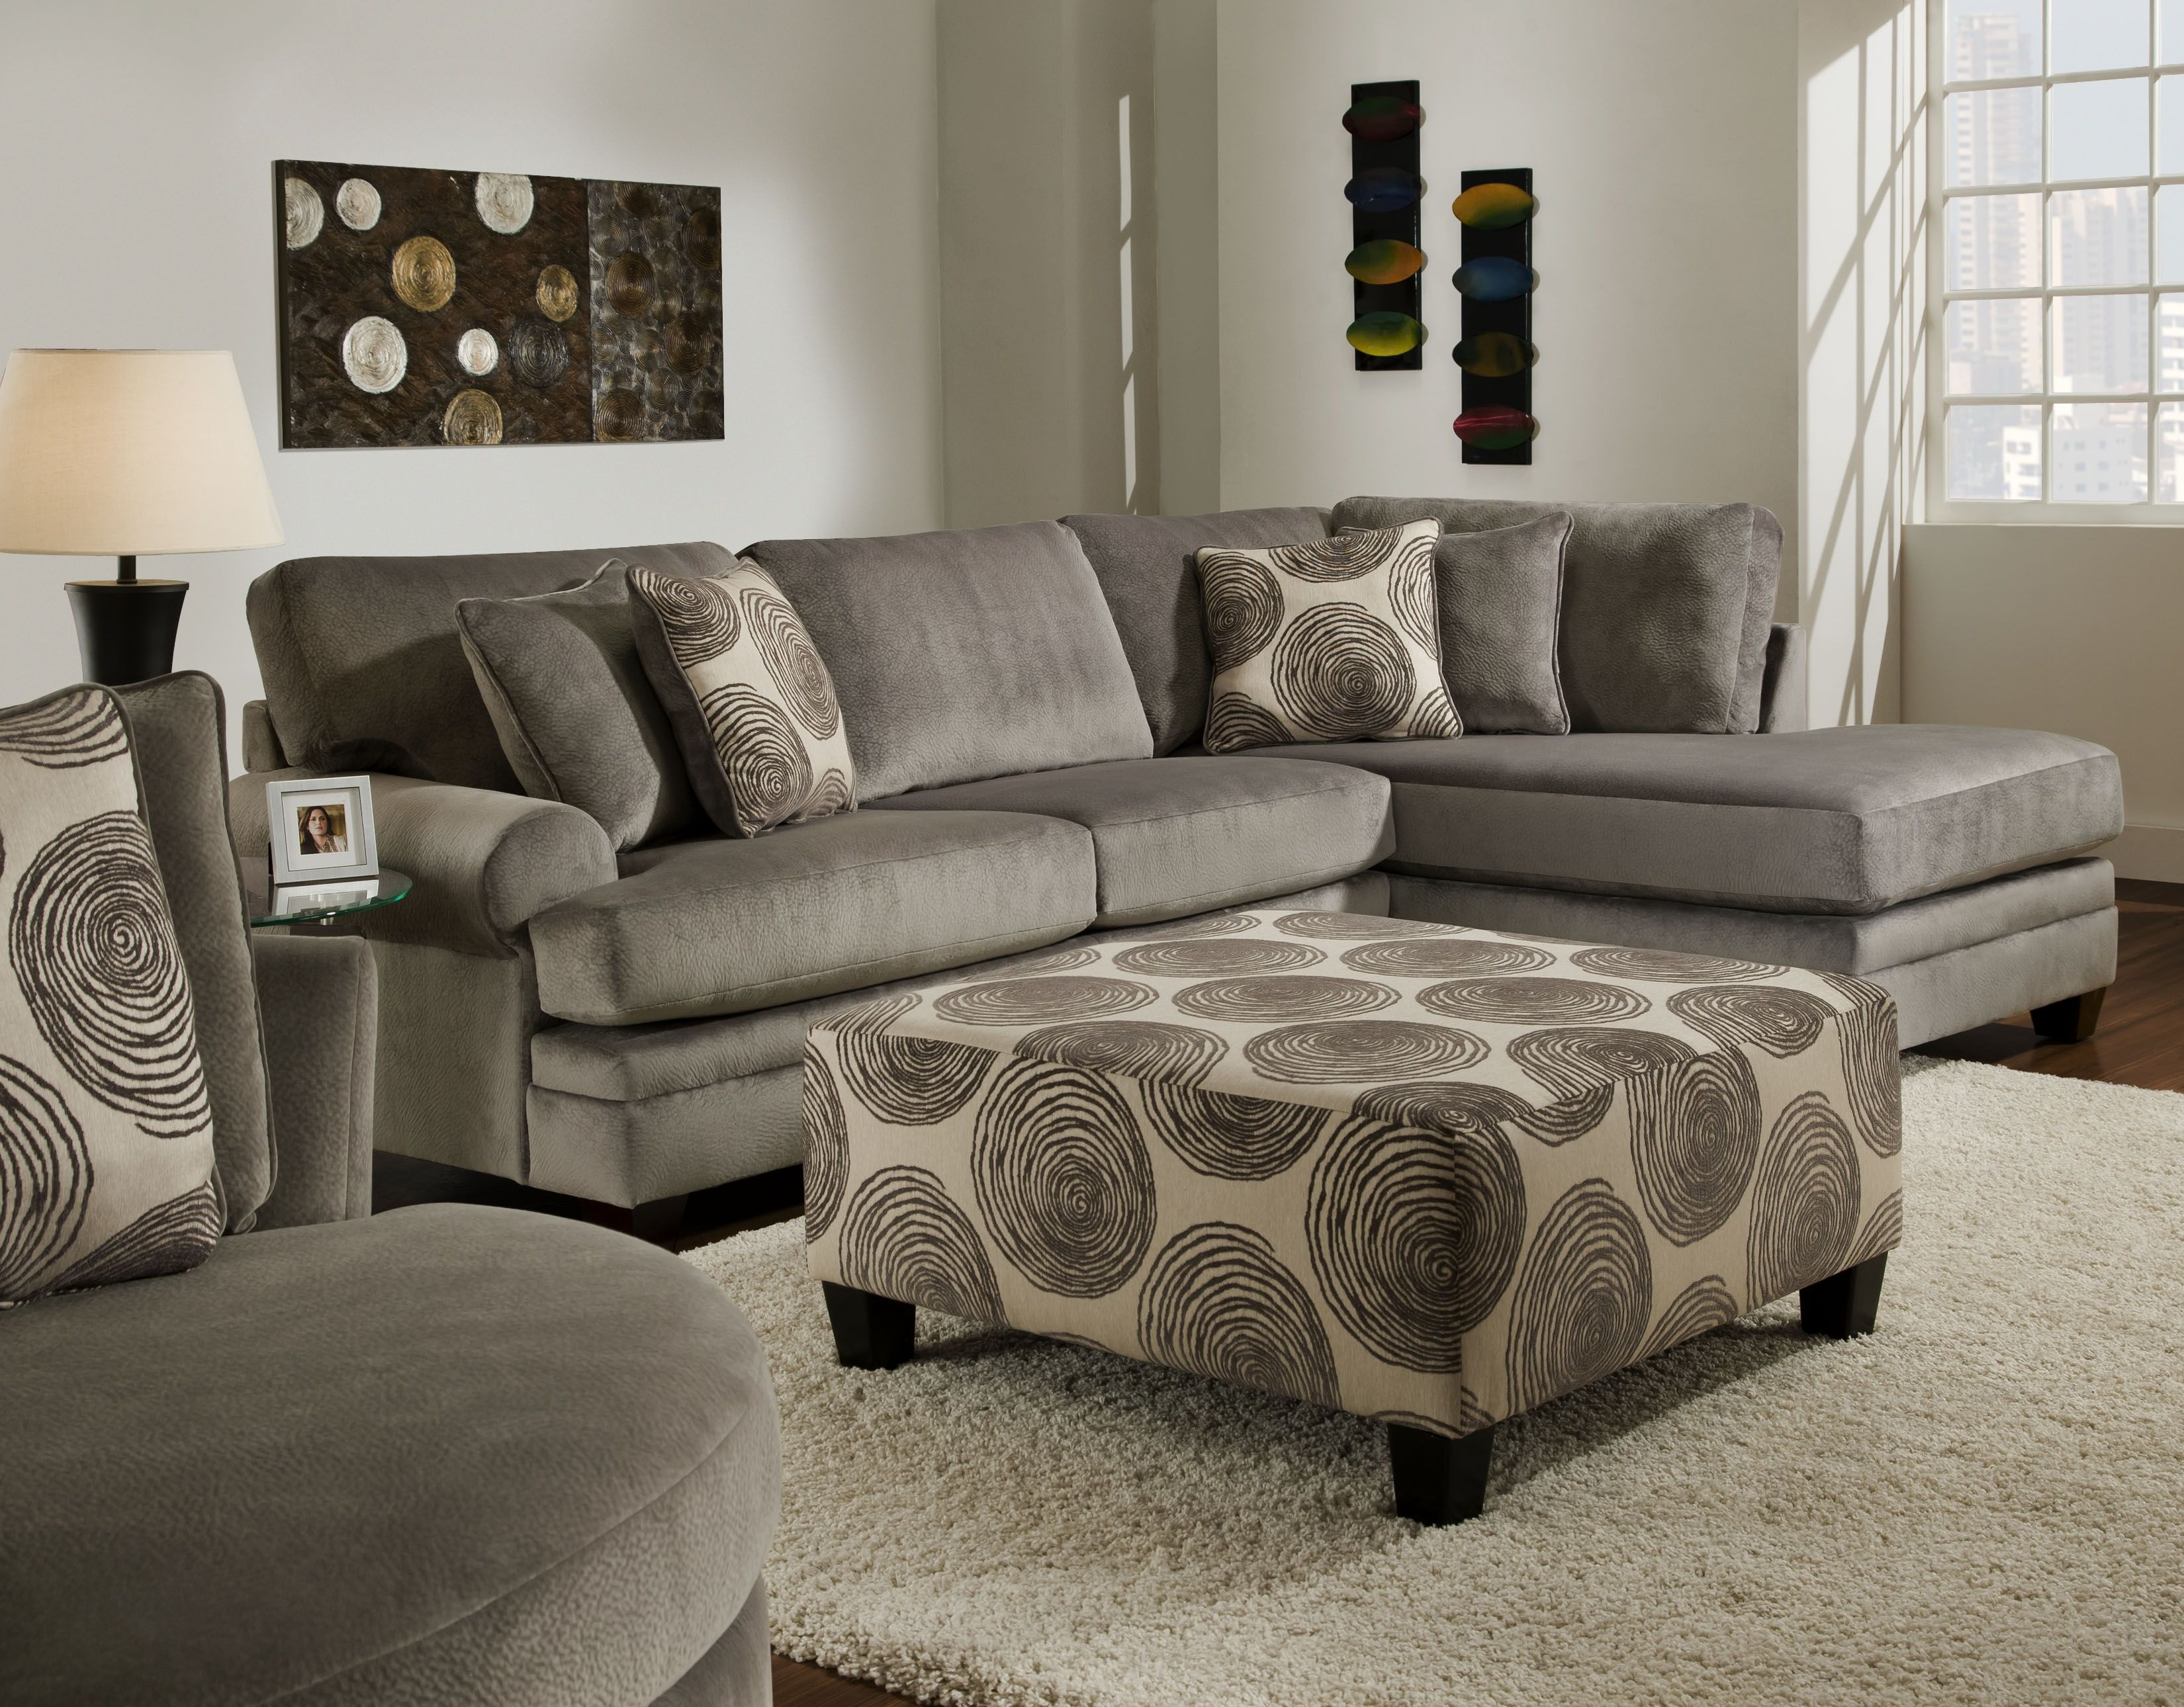 Groovy Champion Grey Sectional 2 Pc $1,195 @ Cornerstone Furniture Throughout Las Vegas Sectional Sofas (View 8 of 10)